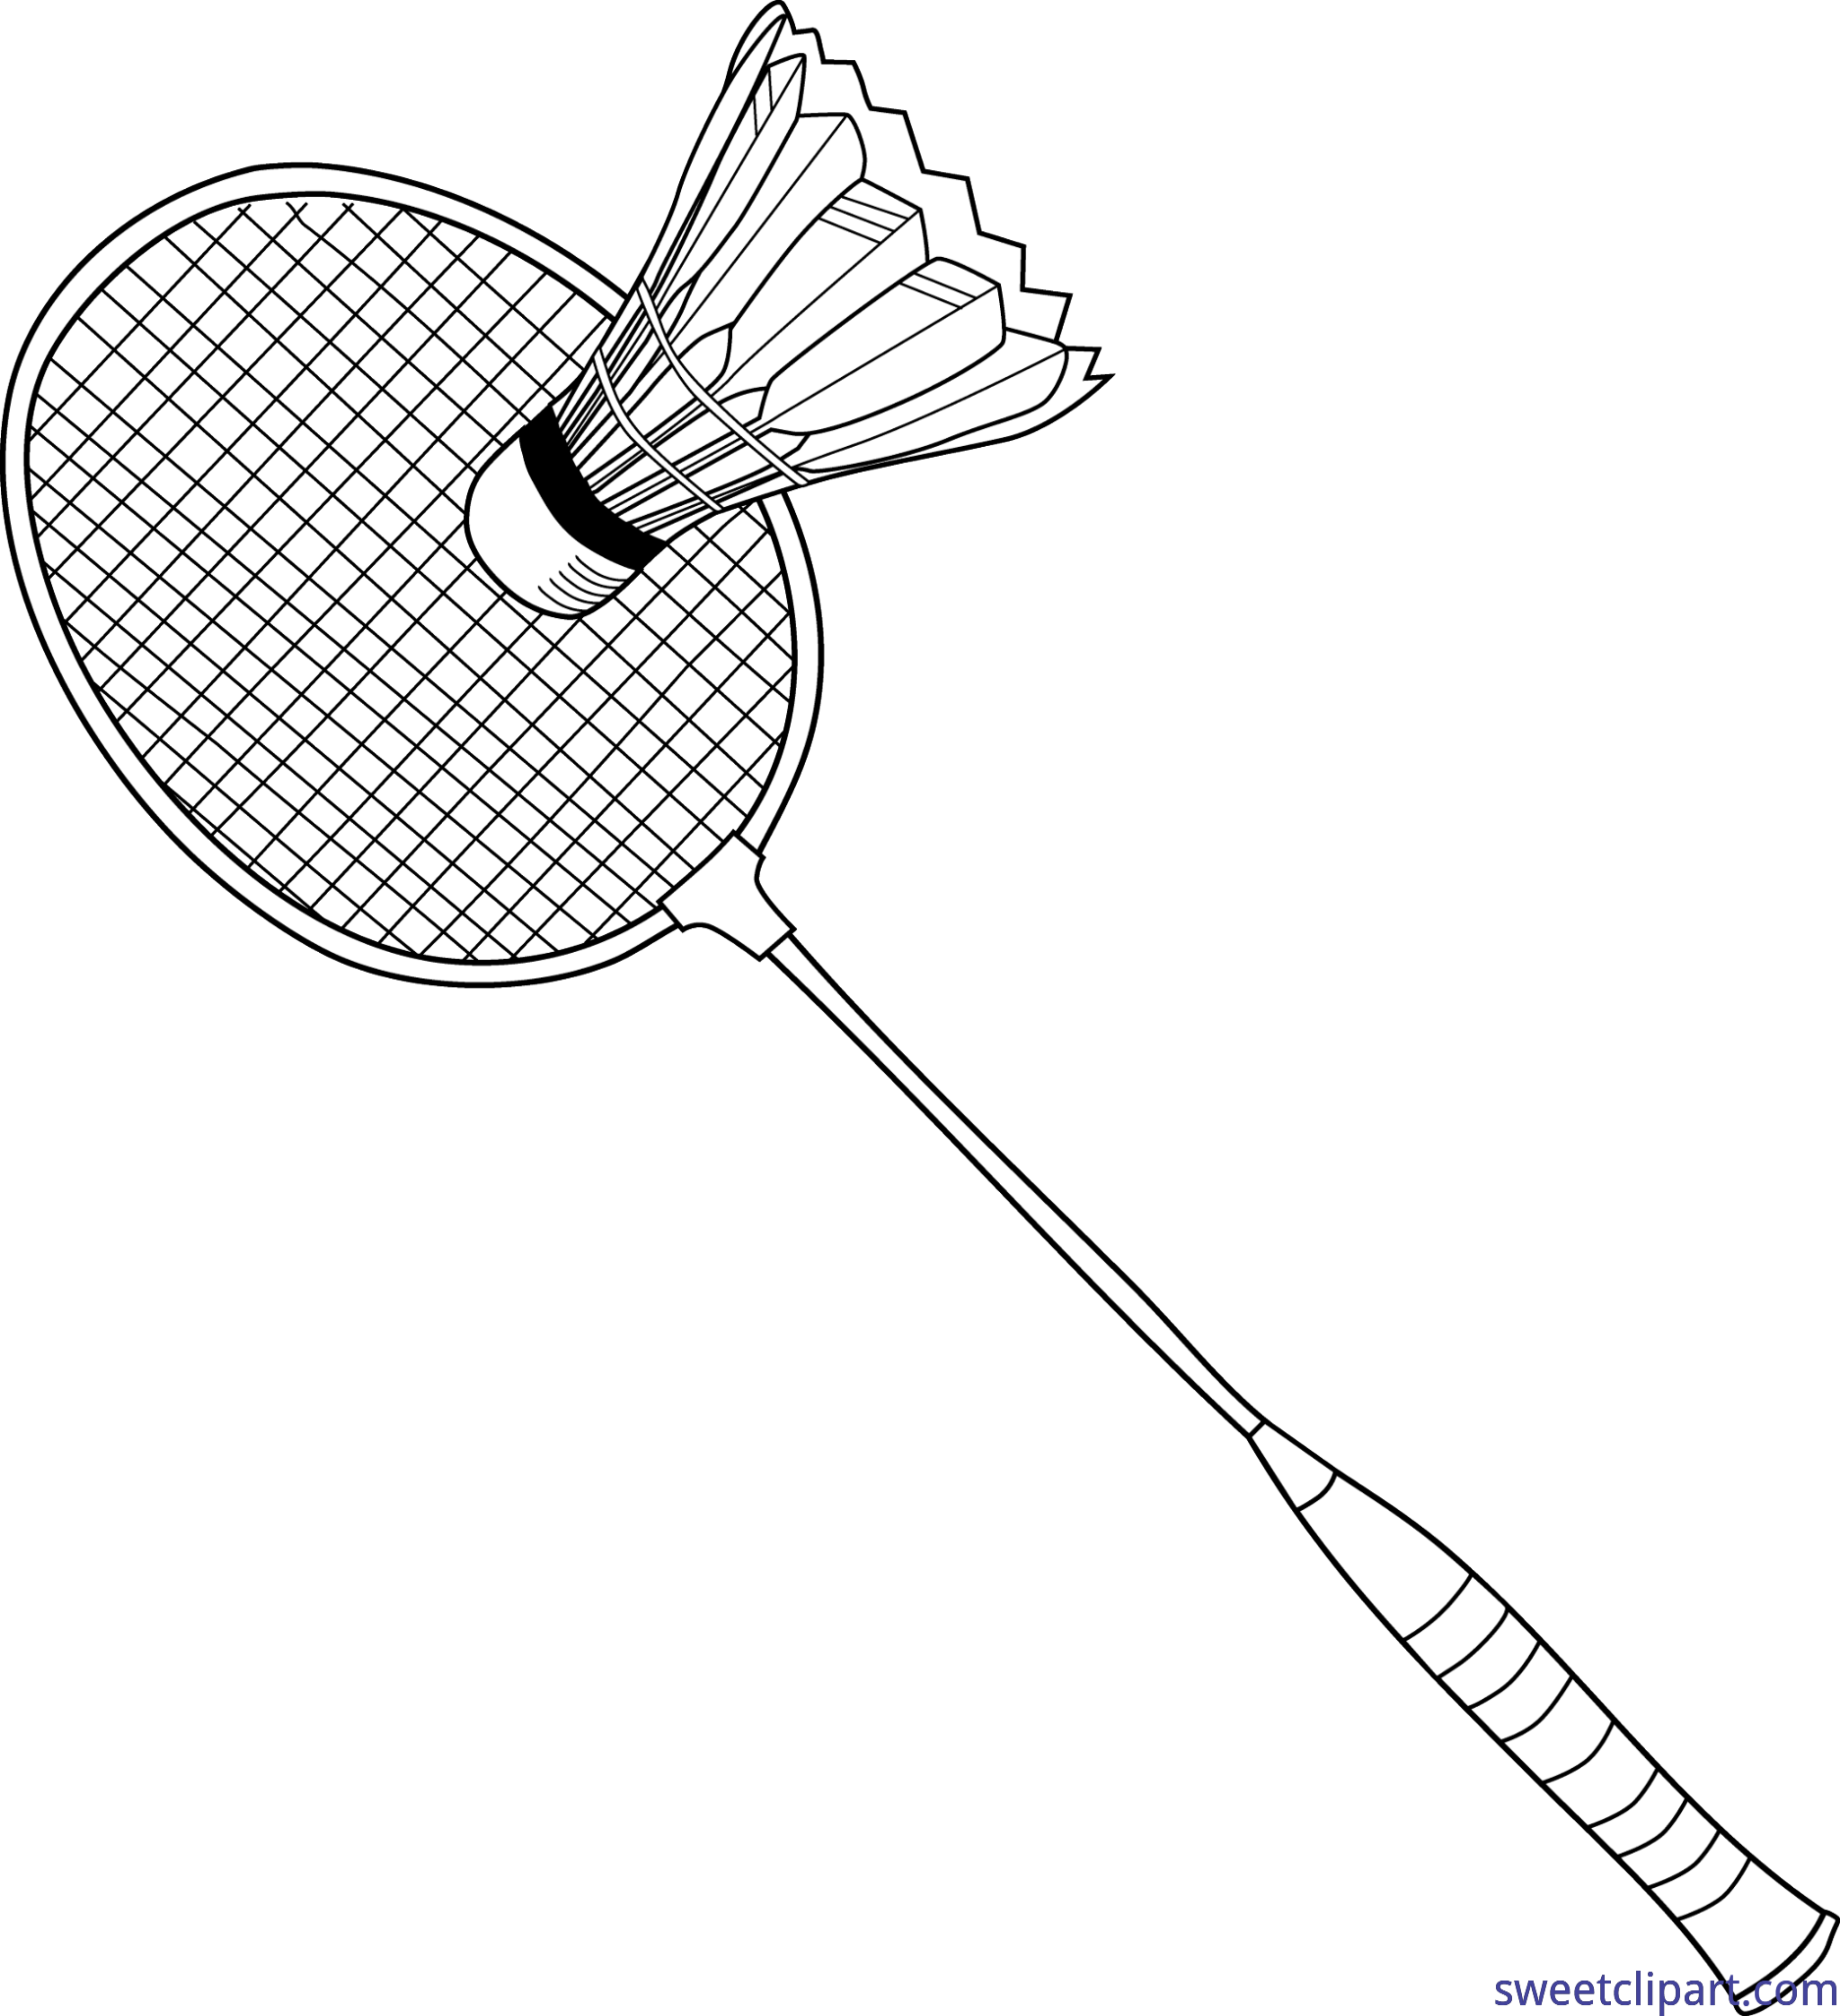 graphic black and white Badminton clipart. Lineart clip art sweet.